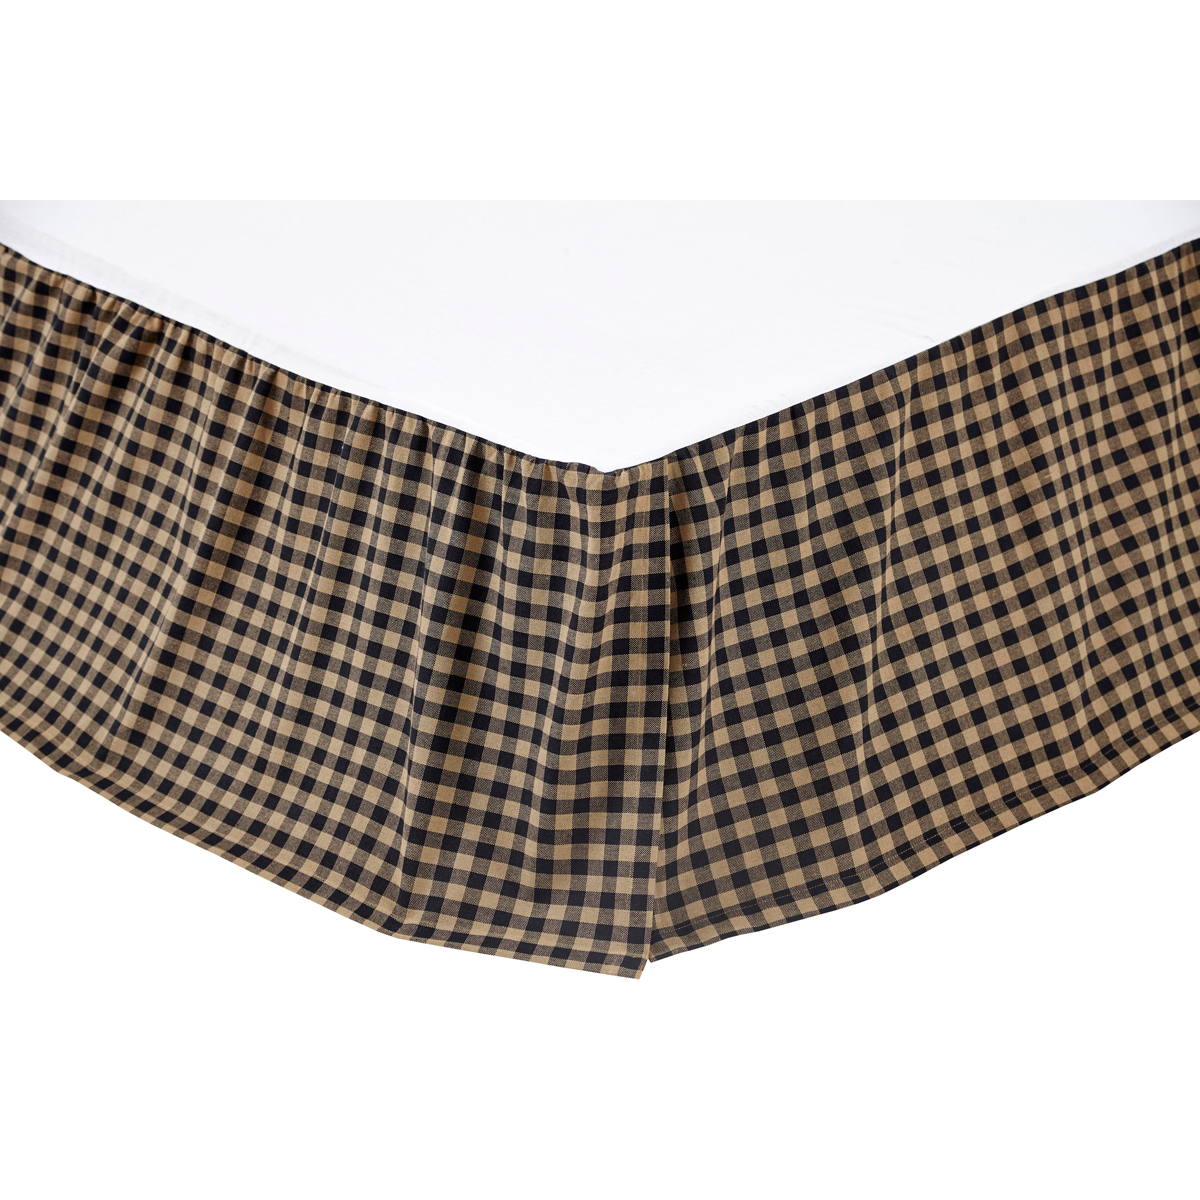 BLACK CHECK Bed Skirt for King/California King - Raven and Khaki  - VHC Brands